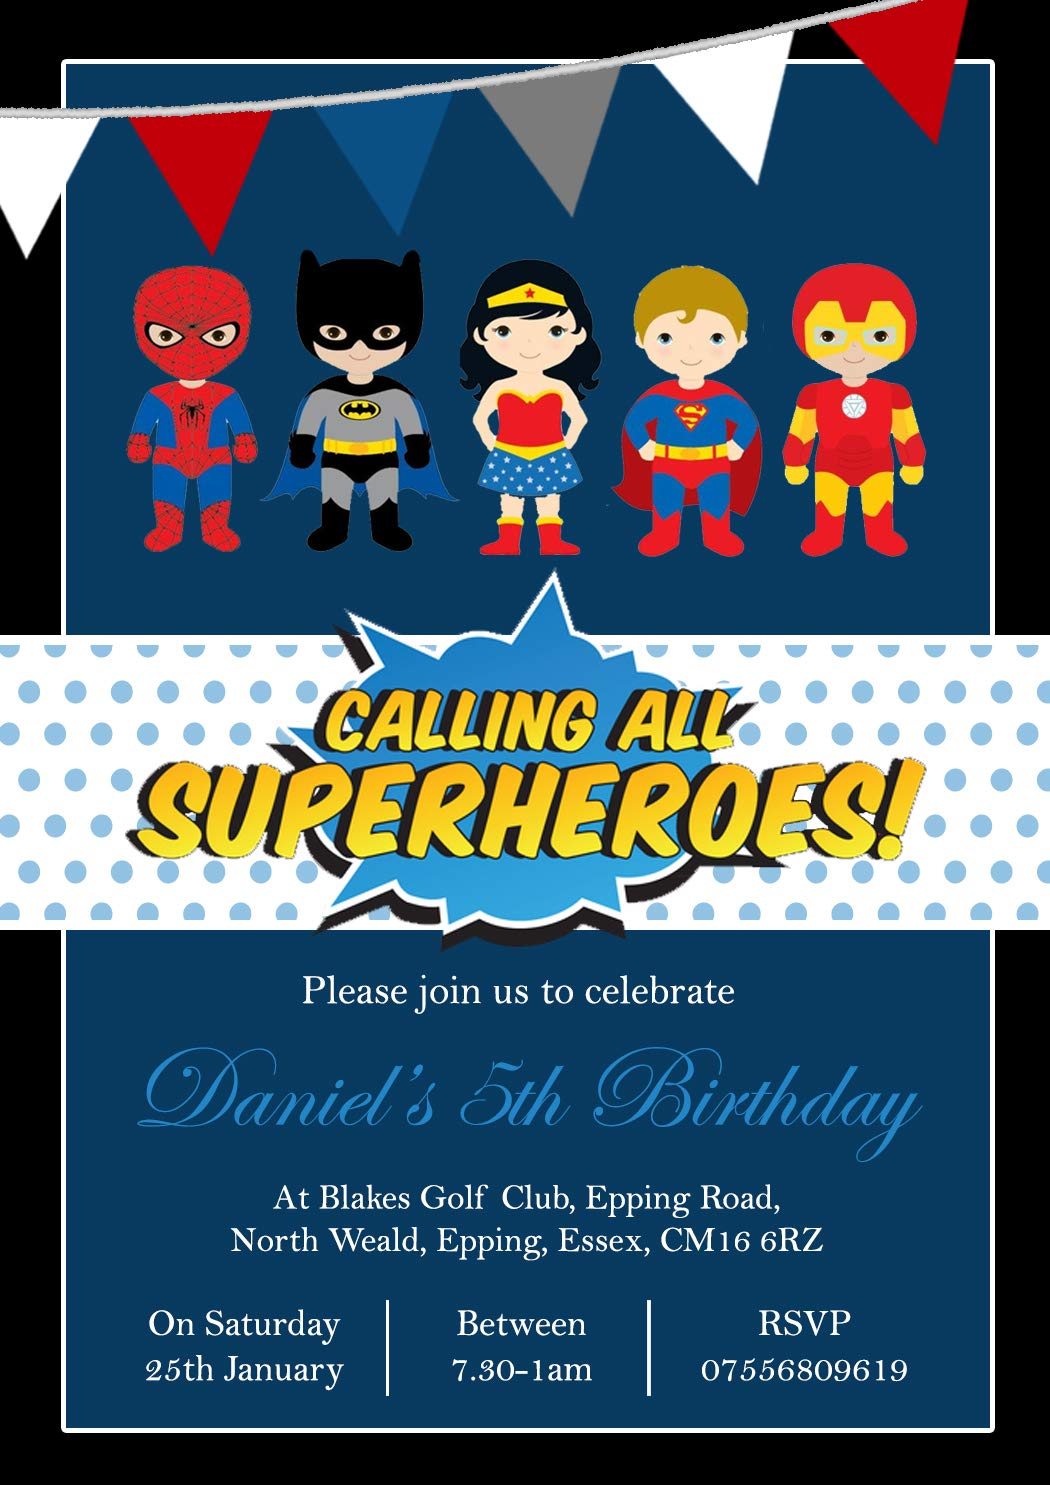 POW Personalised Calling All Superheros Childrens Birthday Invitations Printed Invites Boy Girl Joint Party Twins Unisex Photo Card